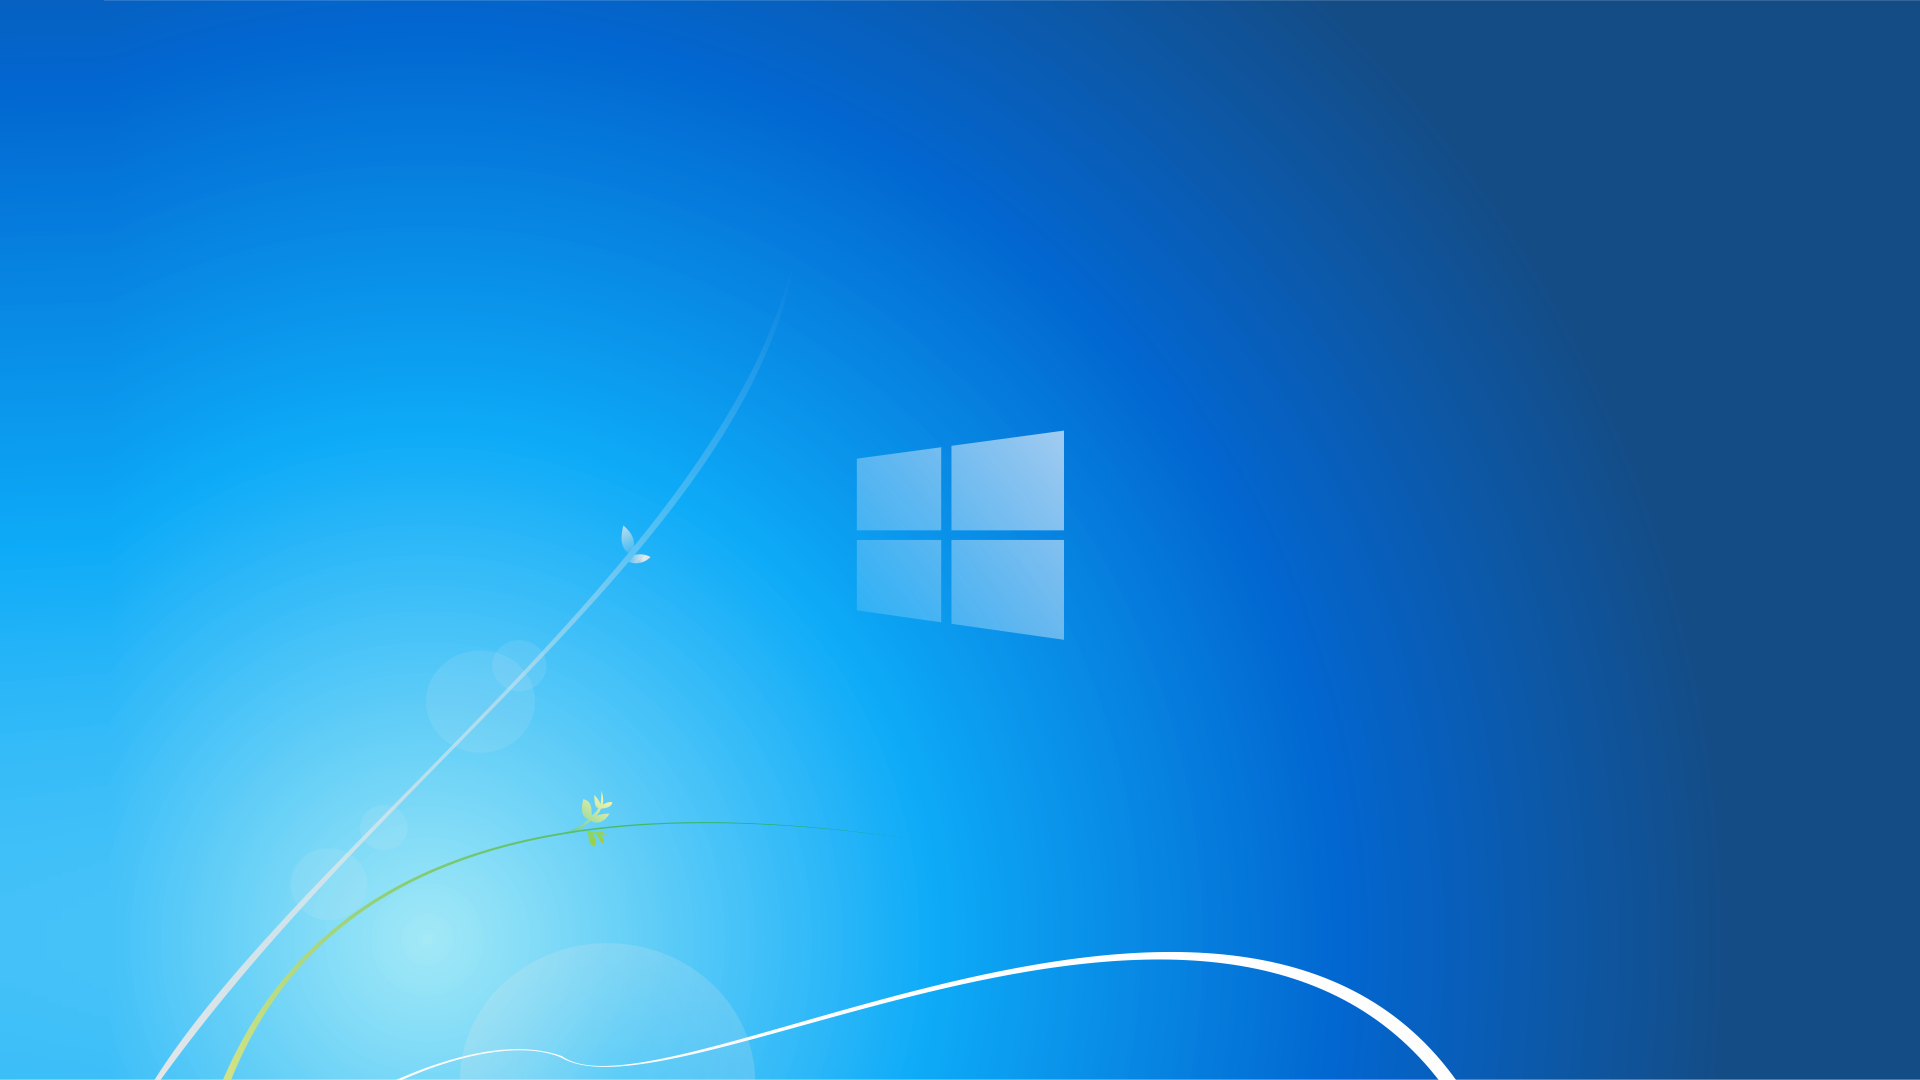 windows 7 reimagined wallpaper by gifteddeviant deviantart com on deviantart